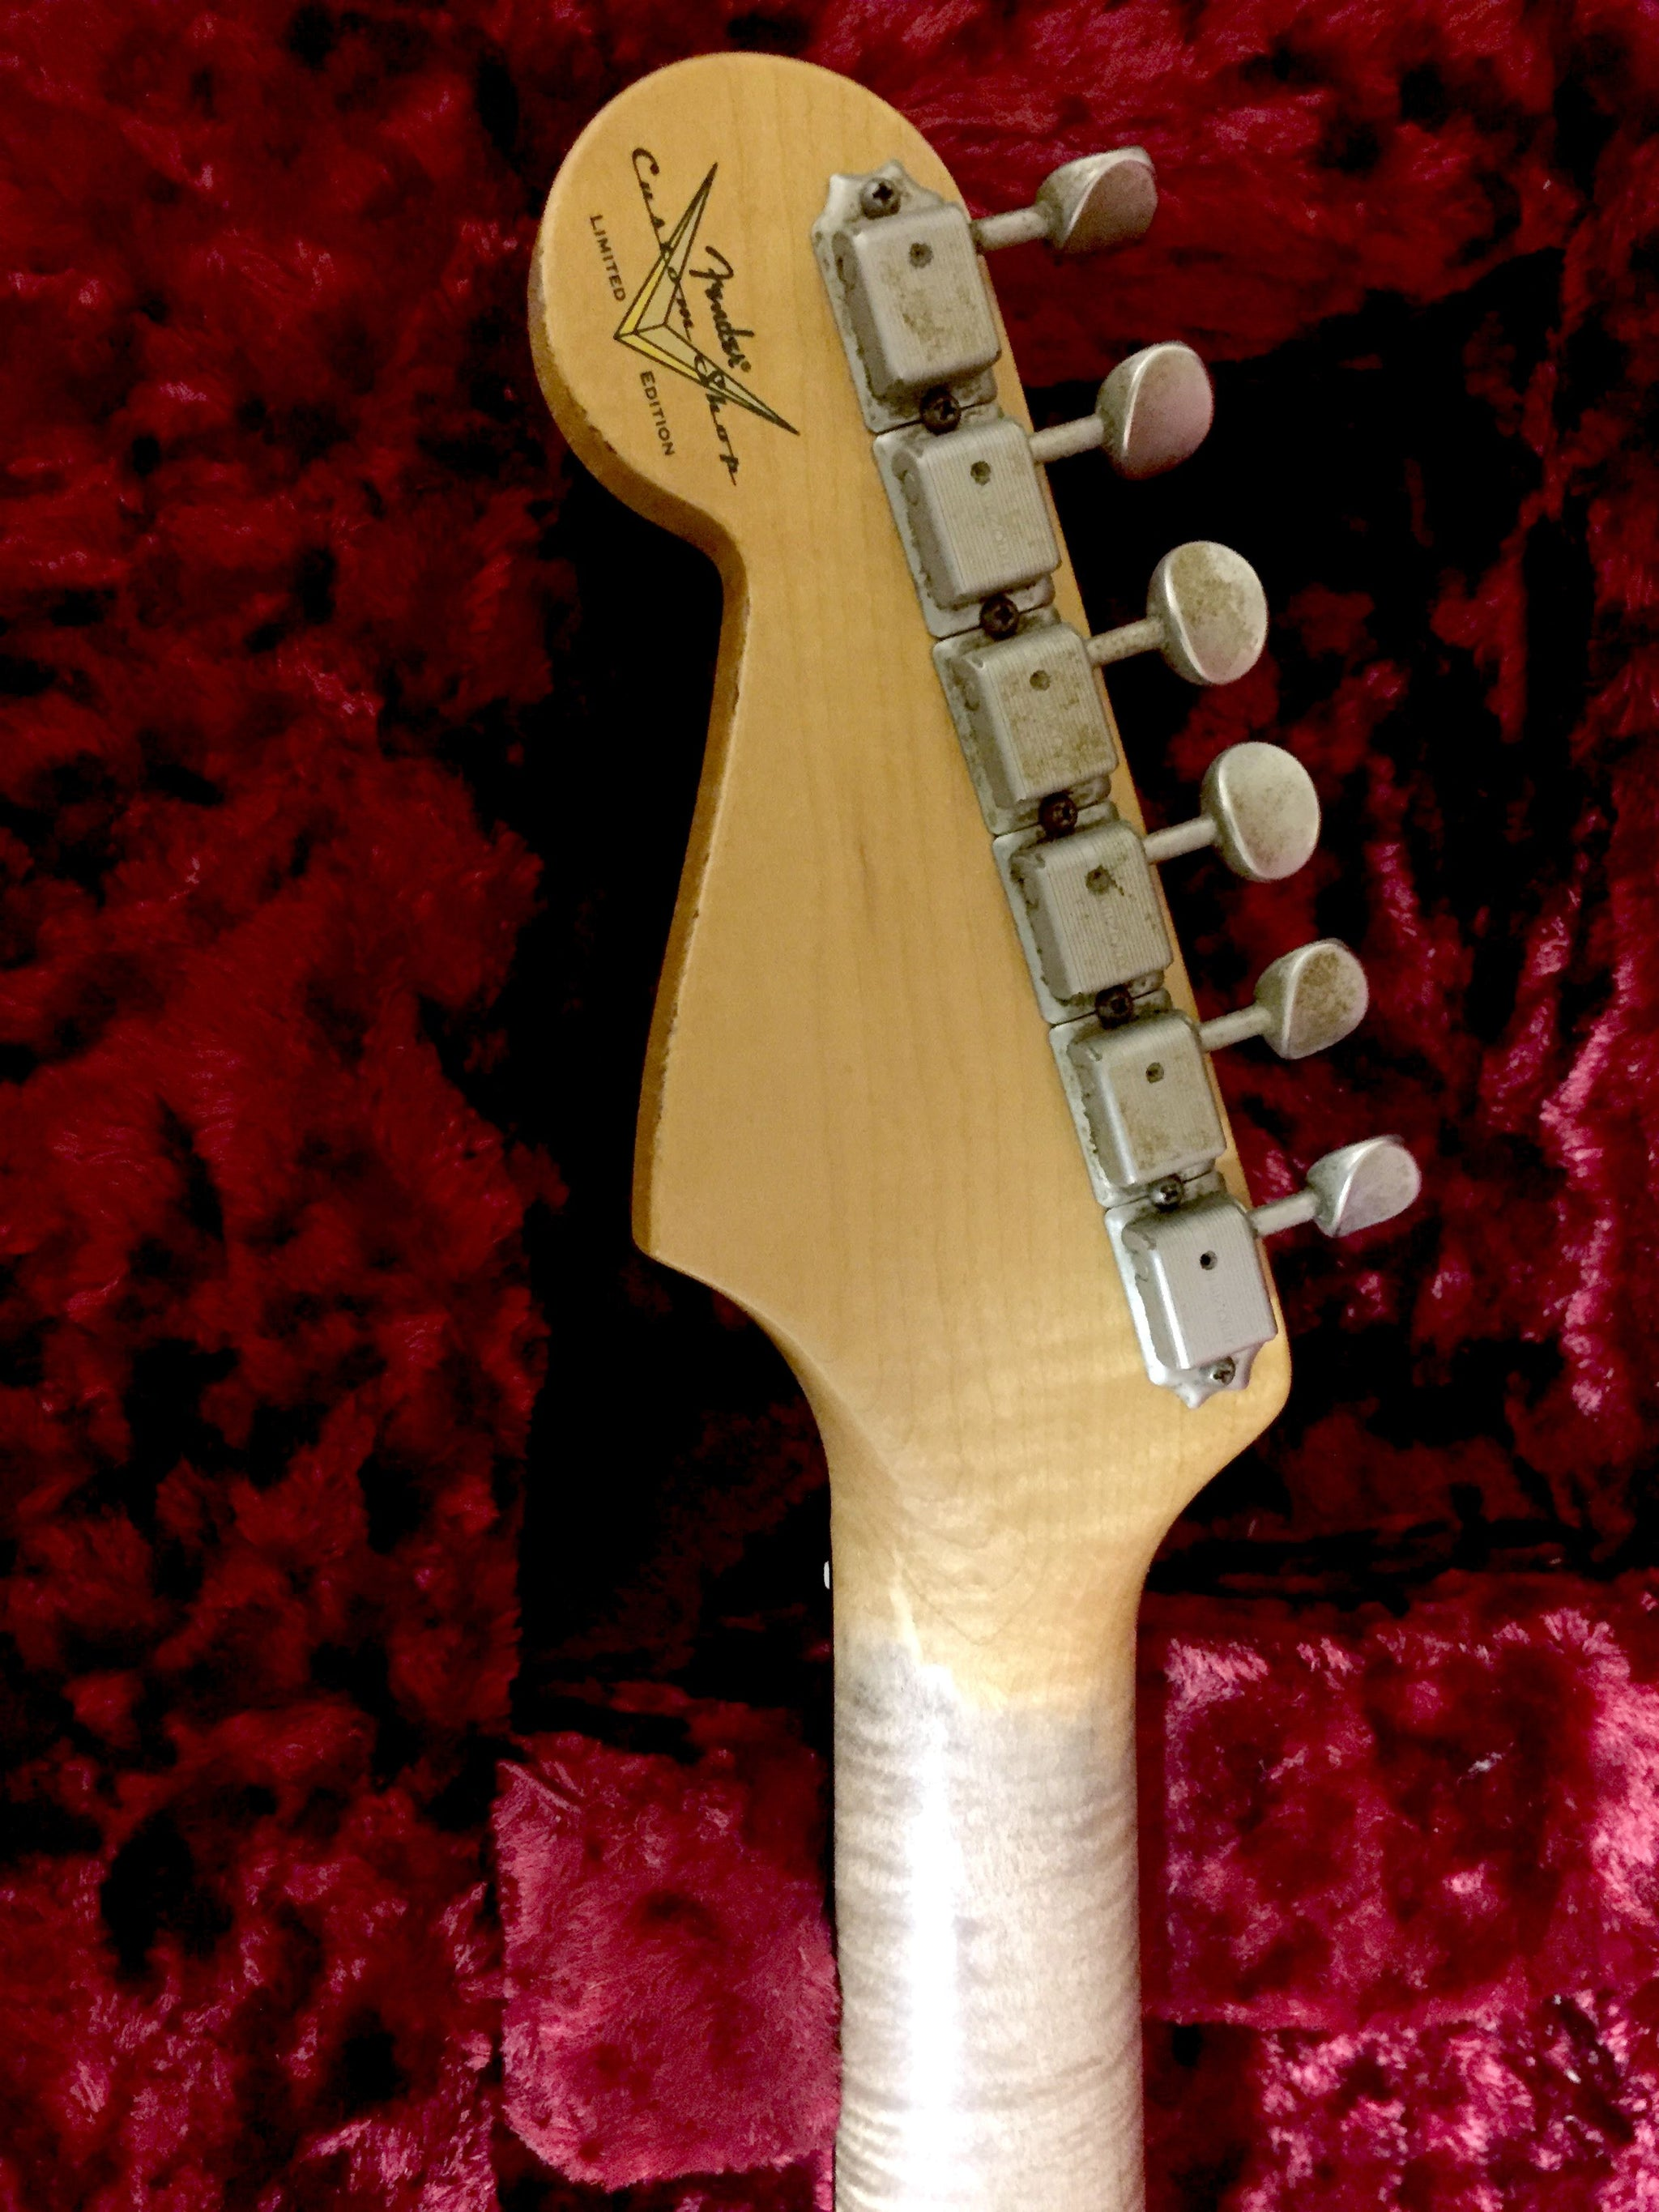 2014 Custom Shop Shoreline Gold Stratocaster - Specially Crafted For 2014 NAMM Show